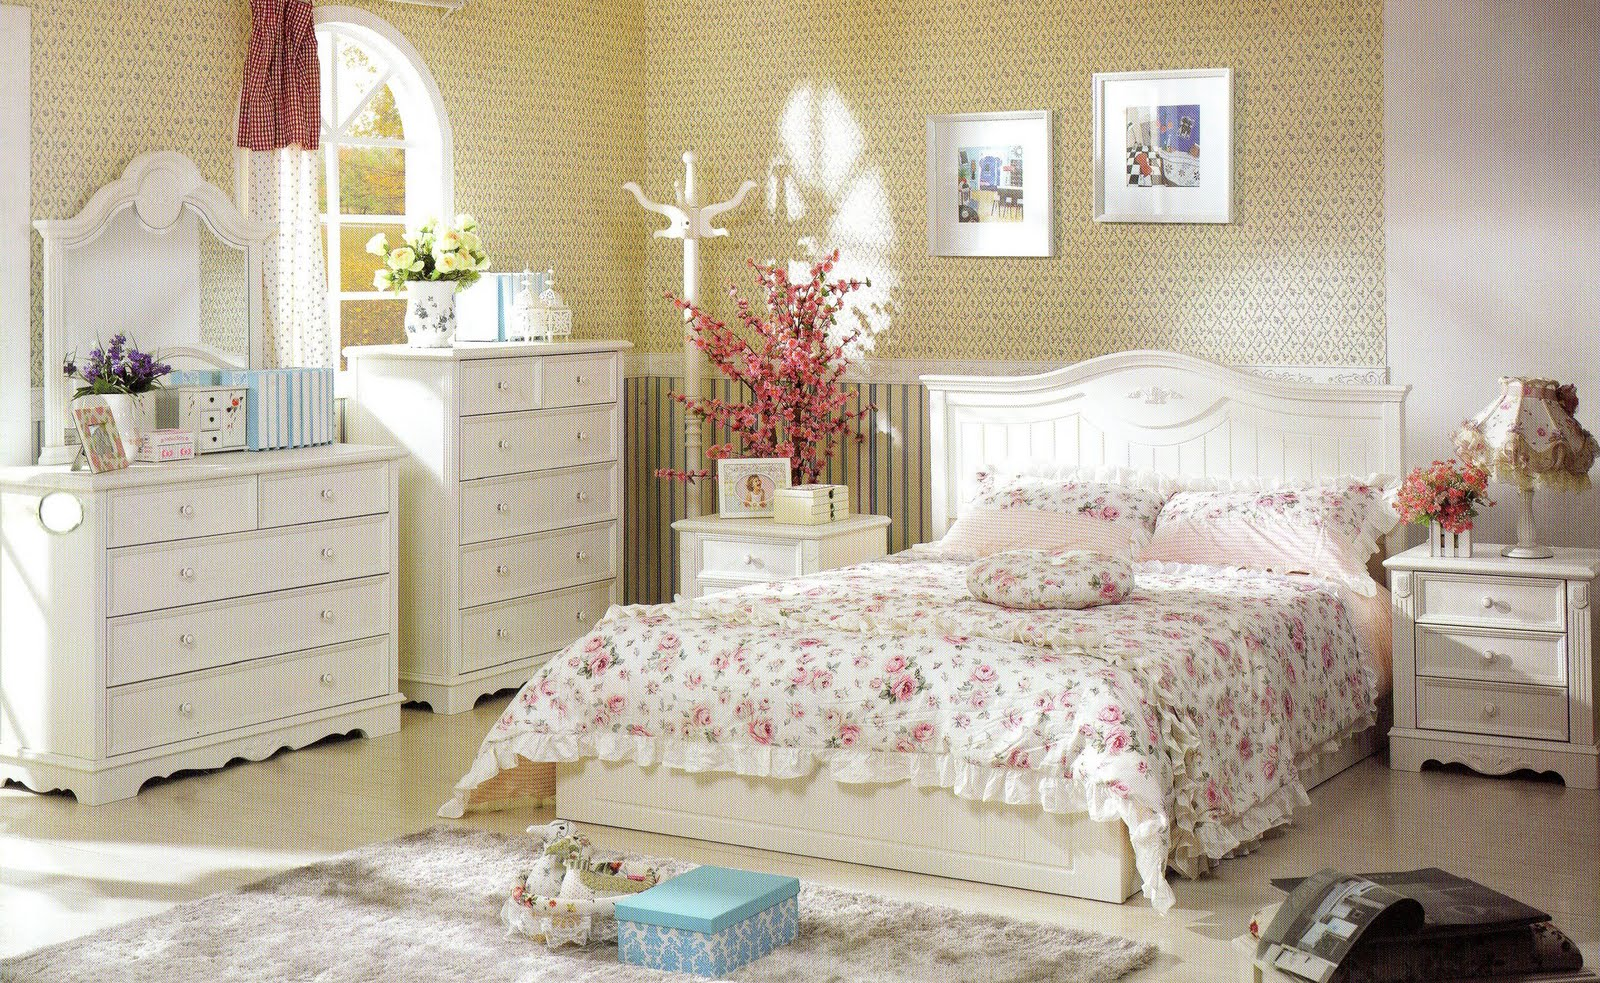 Country style bedrooms sweet doll house for Style of bedroom designs